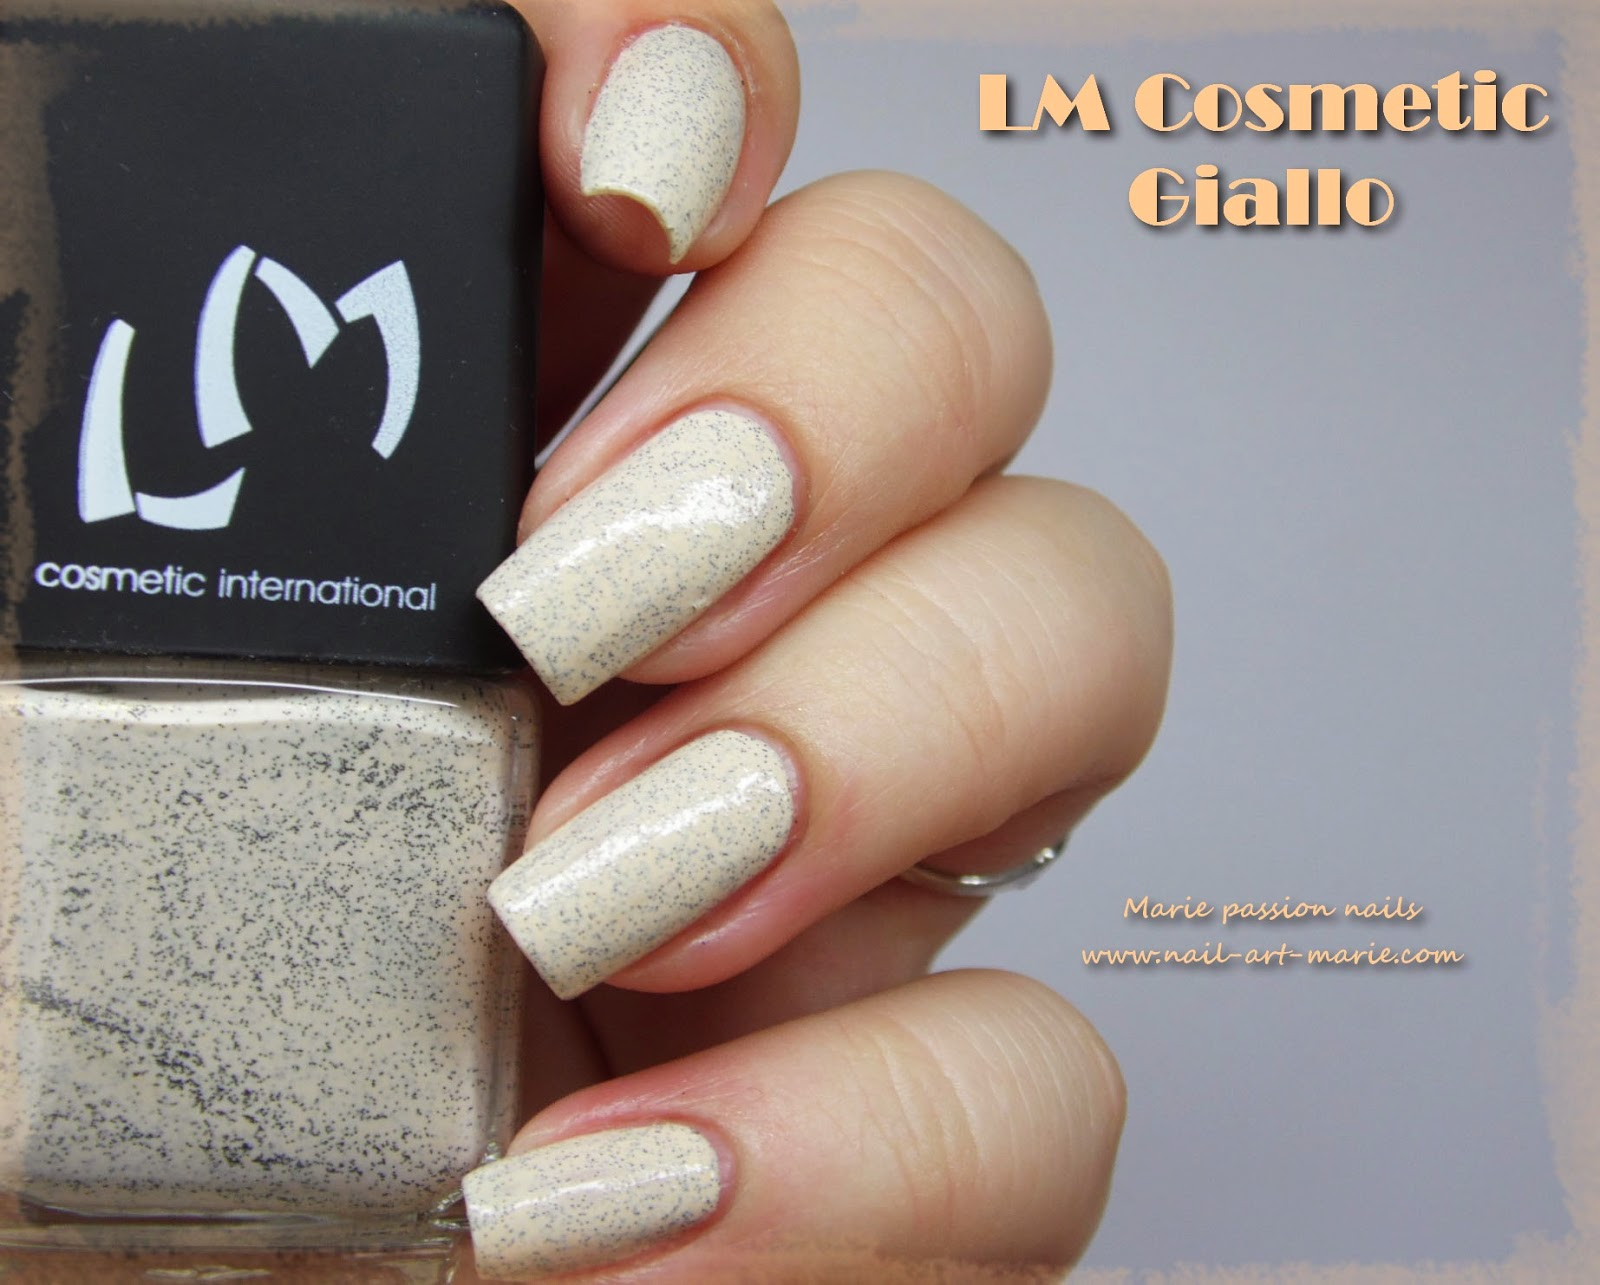 LM Cosmetic Giallo1